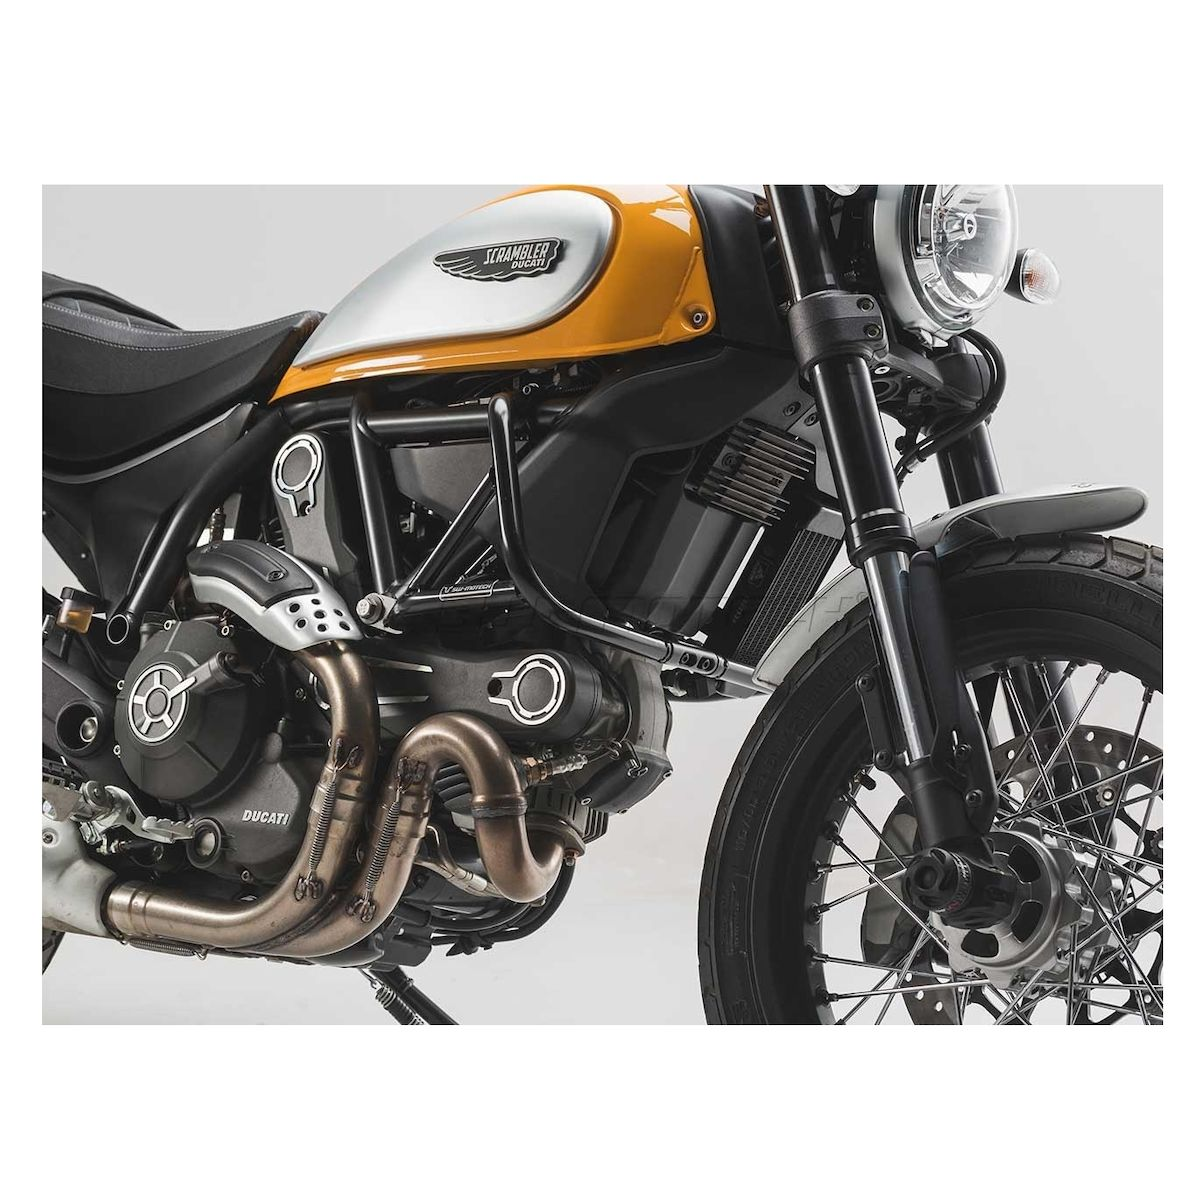 2 taps for petrol thread 12 thread pitch 1.5 per Ducati single and others bikes